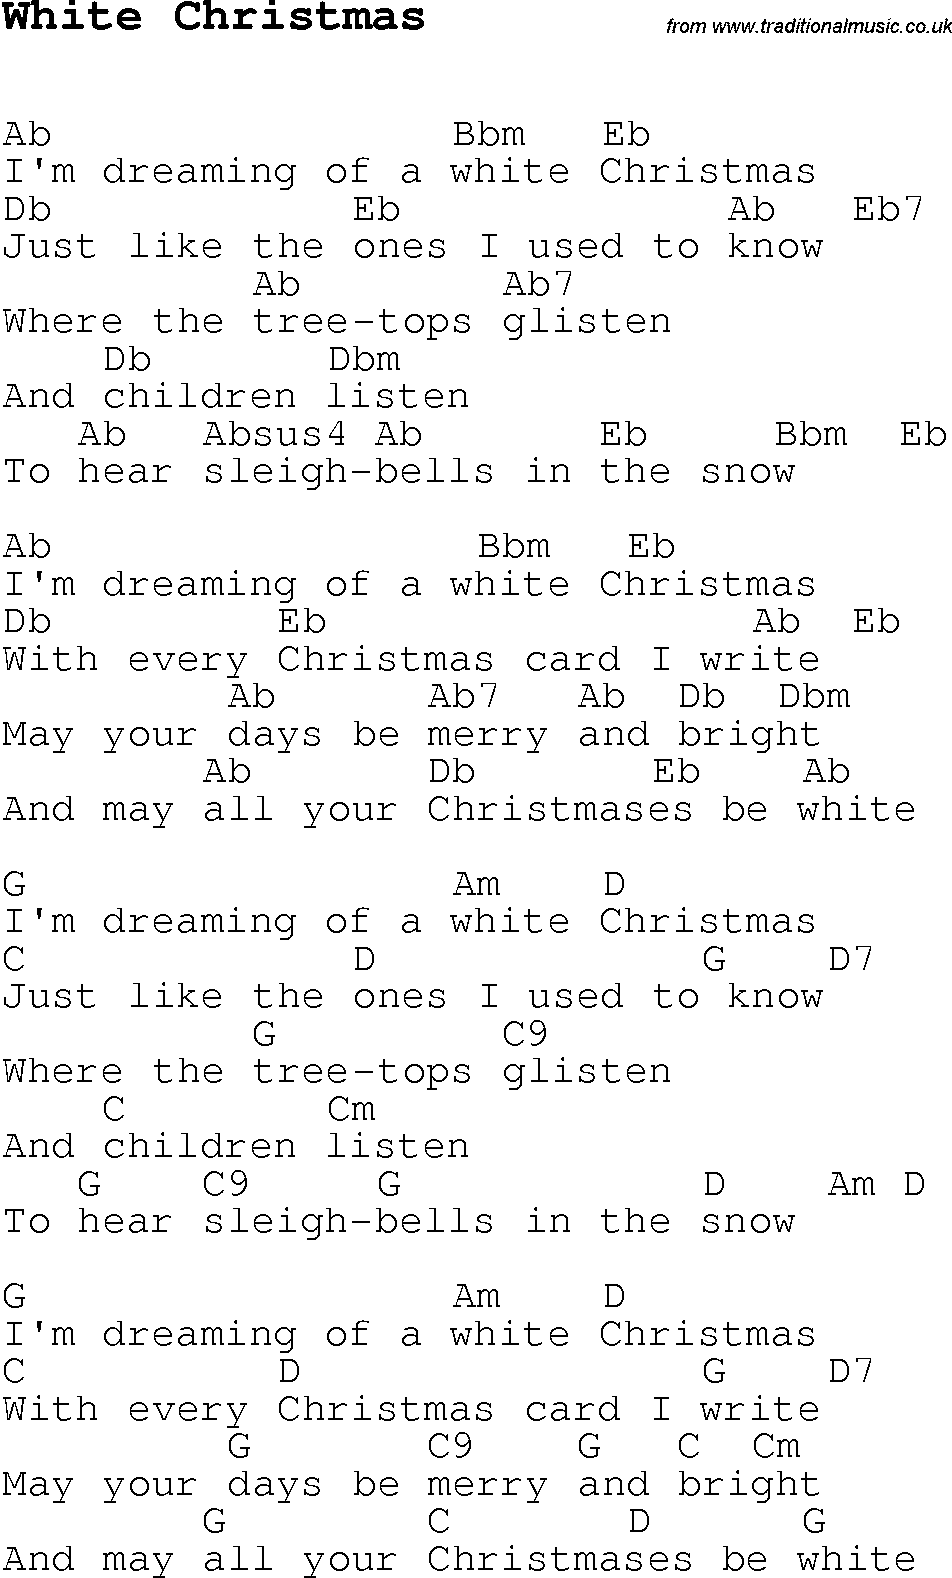 Christmas Carol/Song lyrics with chords for White Christmas